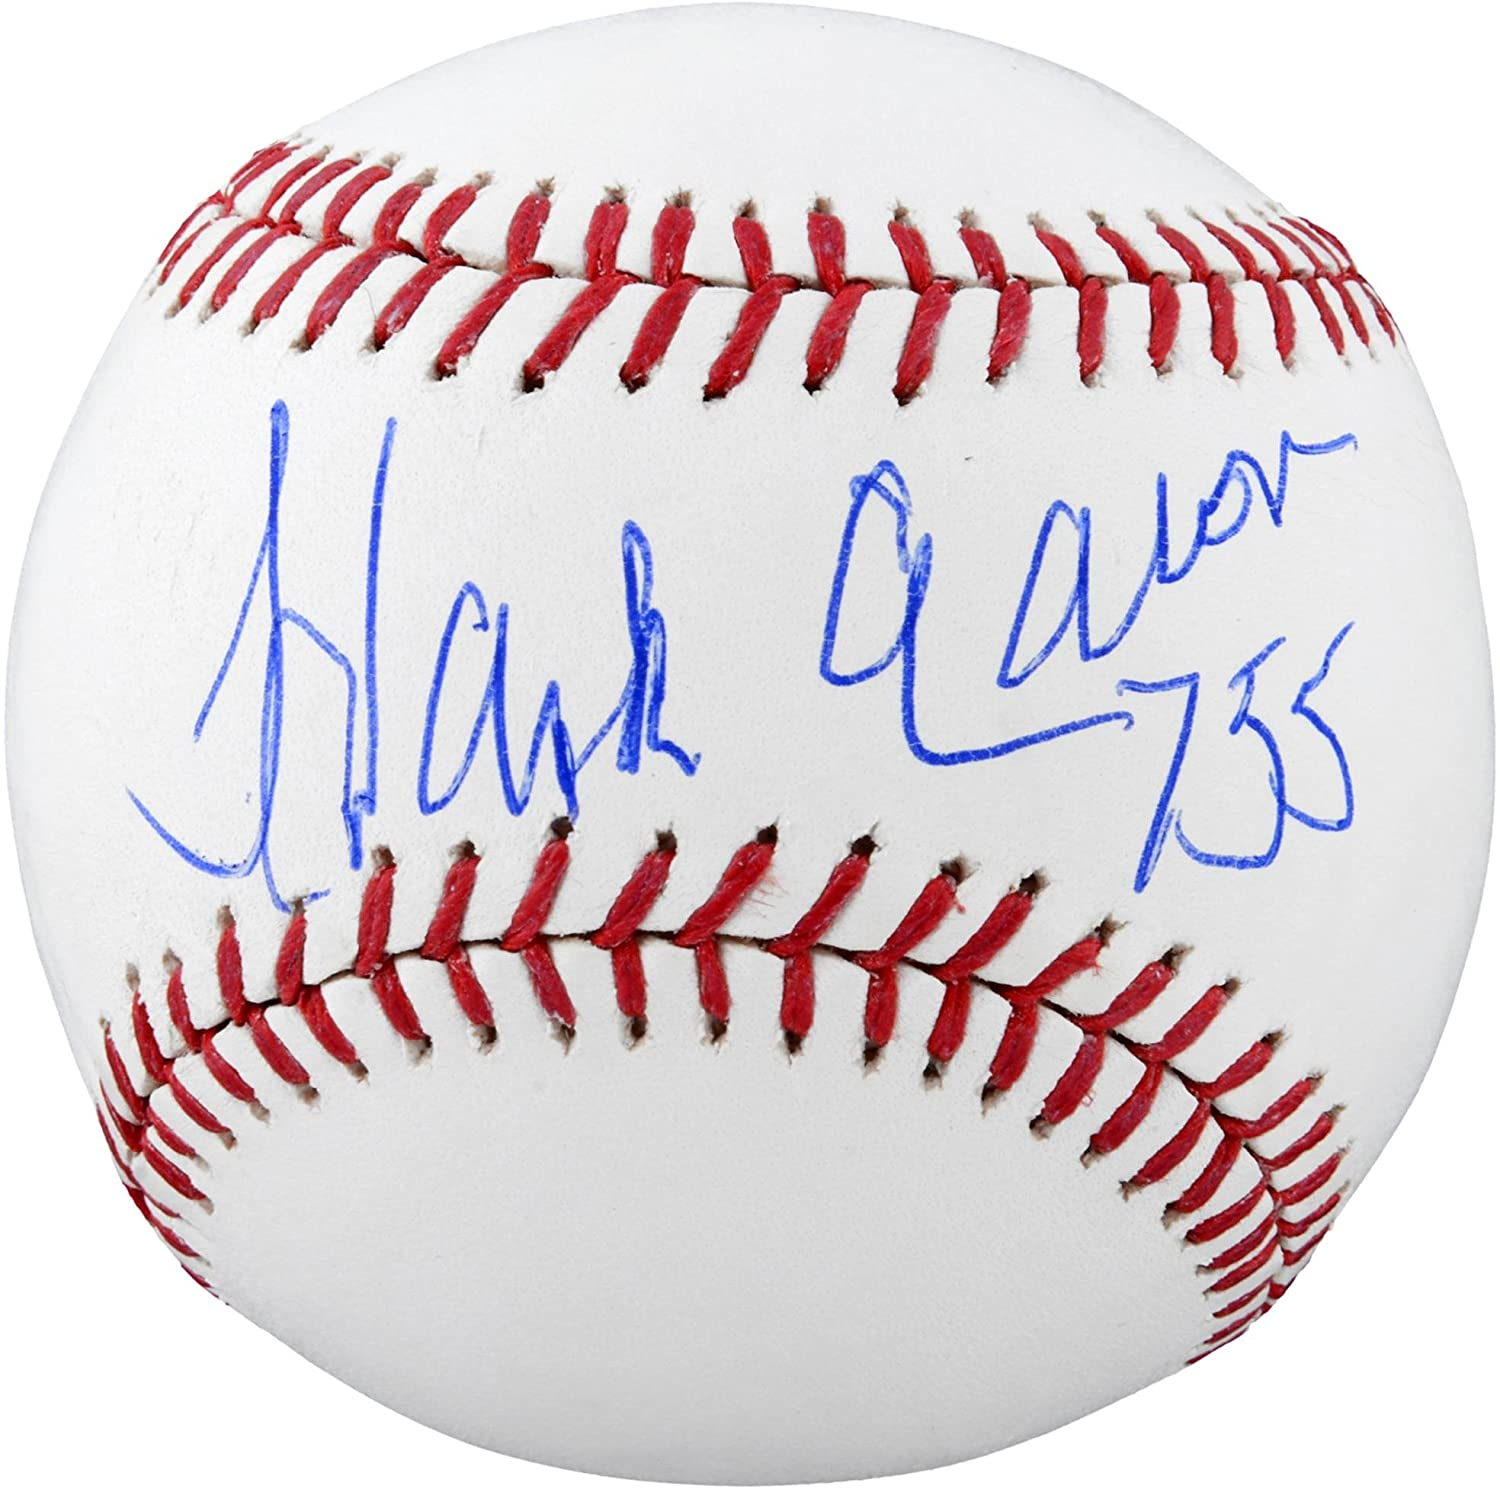 Hank Aaron Atlanta Braves Autographed Baseball with 755 HRS Inscription - Fanatics Authentic Certified Sports Memorabilia